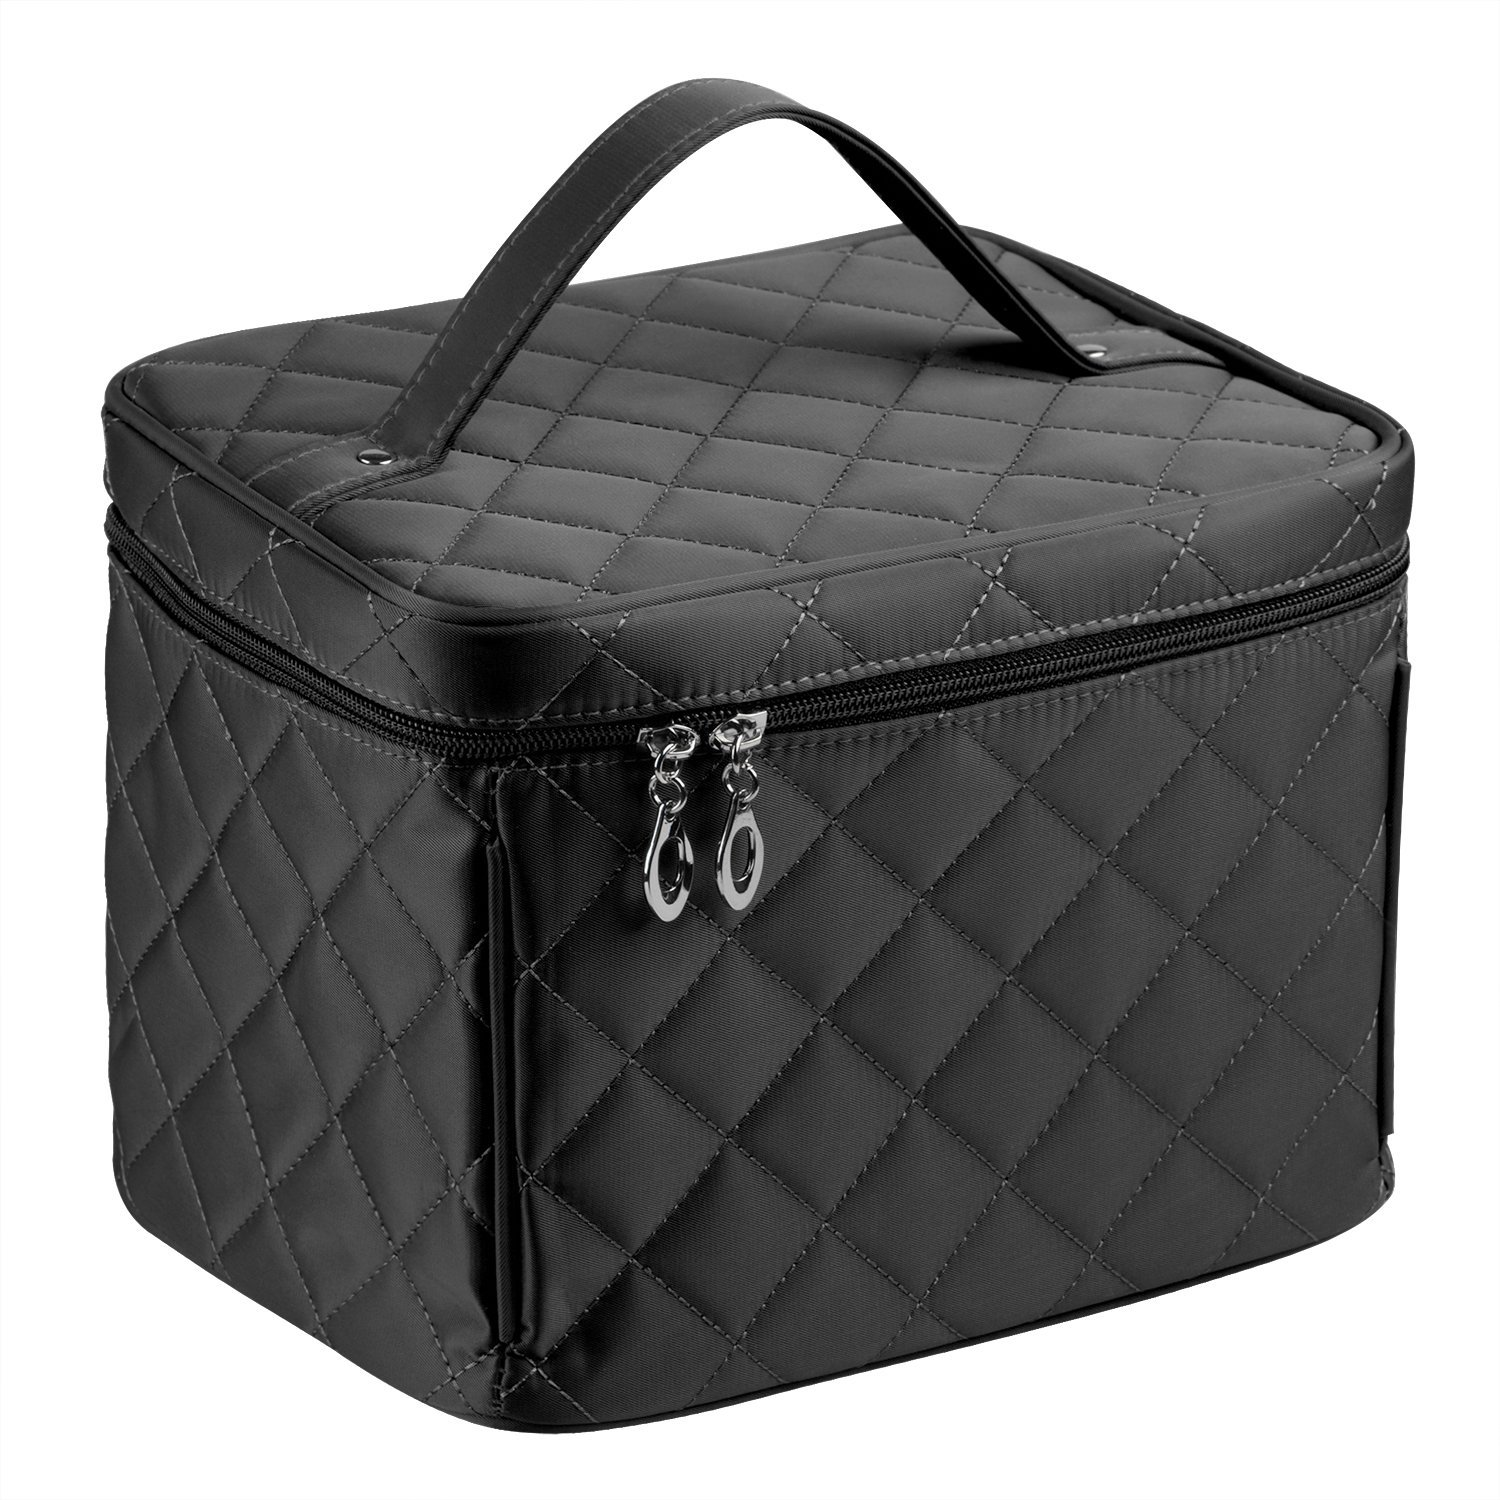 EN'DA big size Nylon Cosmetic bags with quality zipper single layer travel Makeup bags (Black)